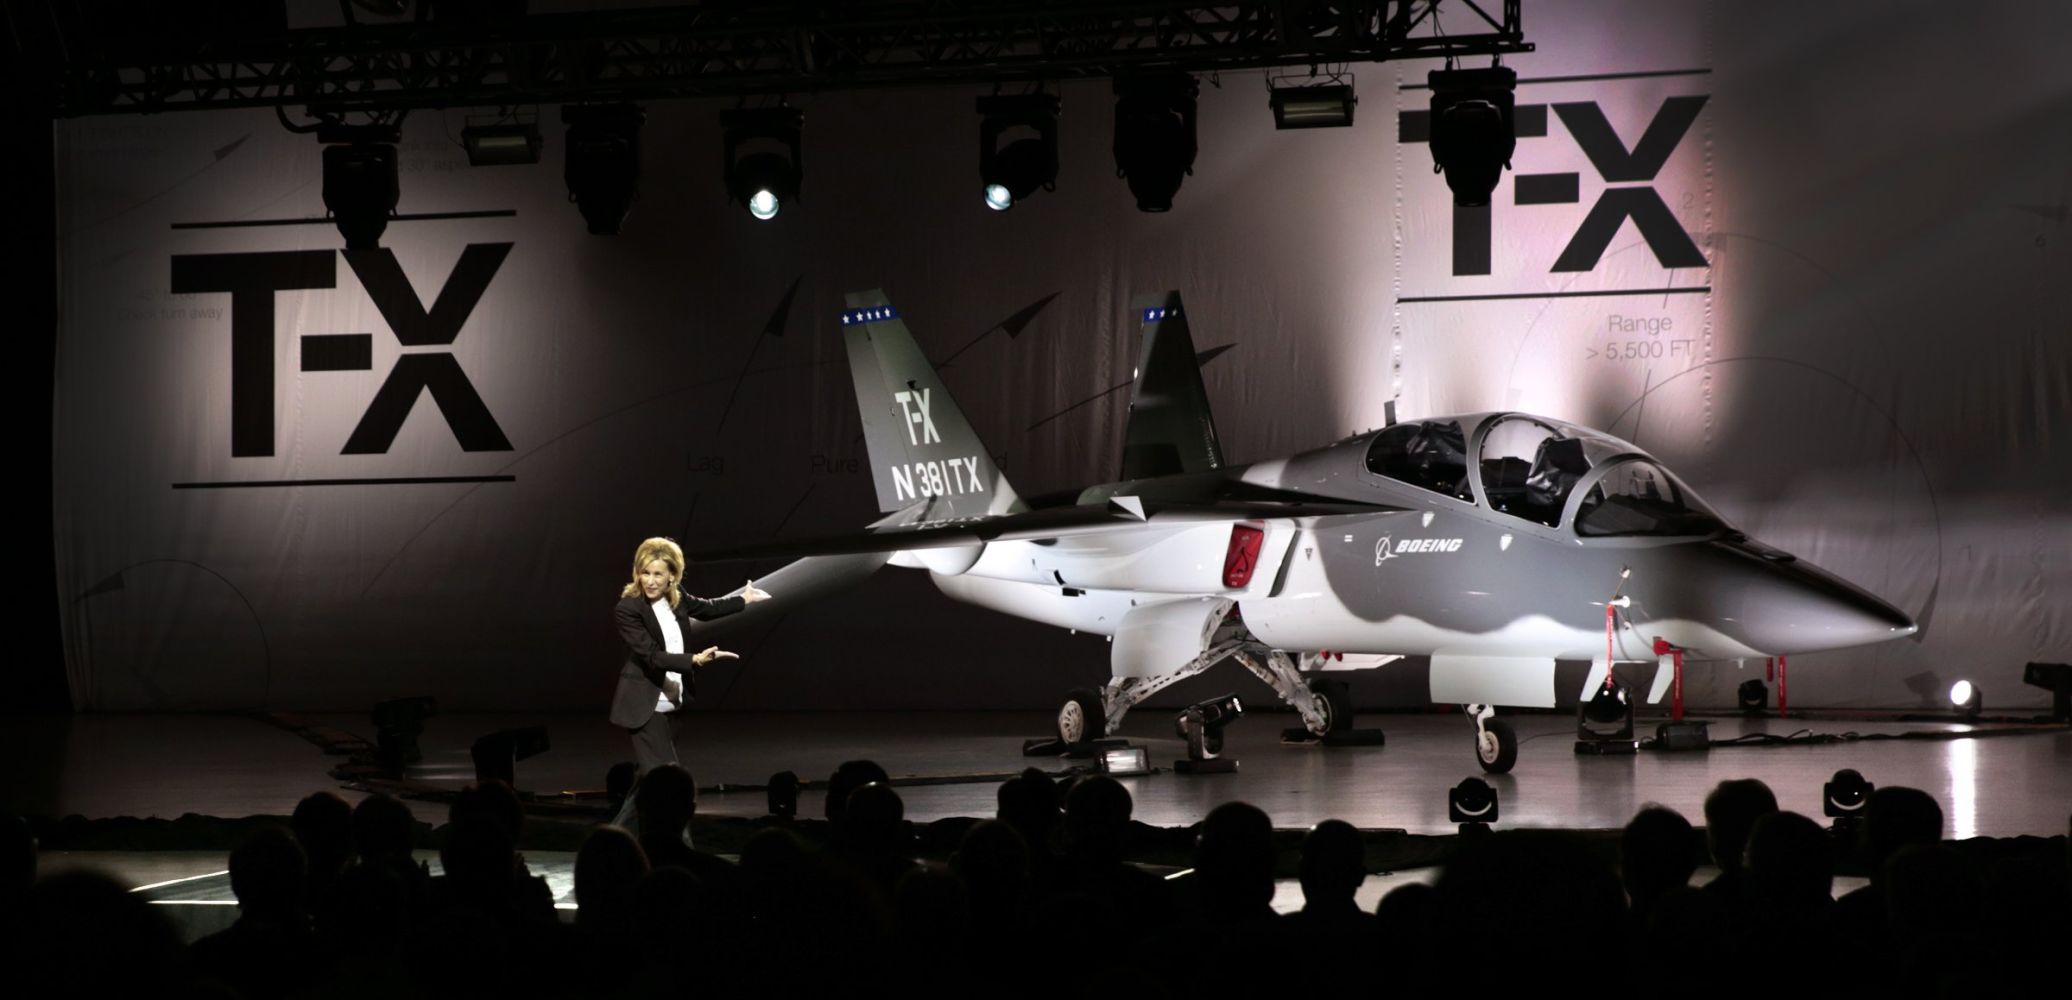 Boeing and Saab unveil new T X Air